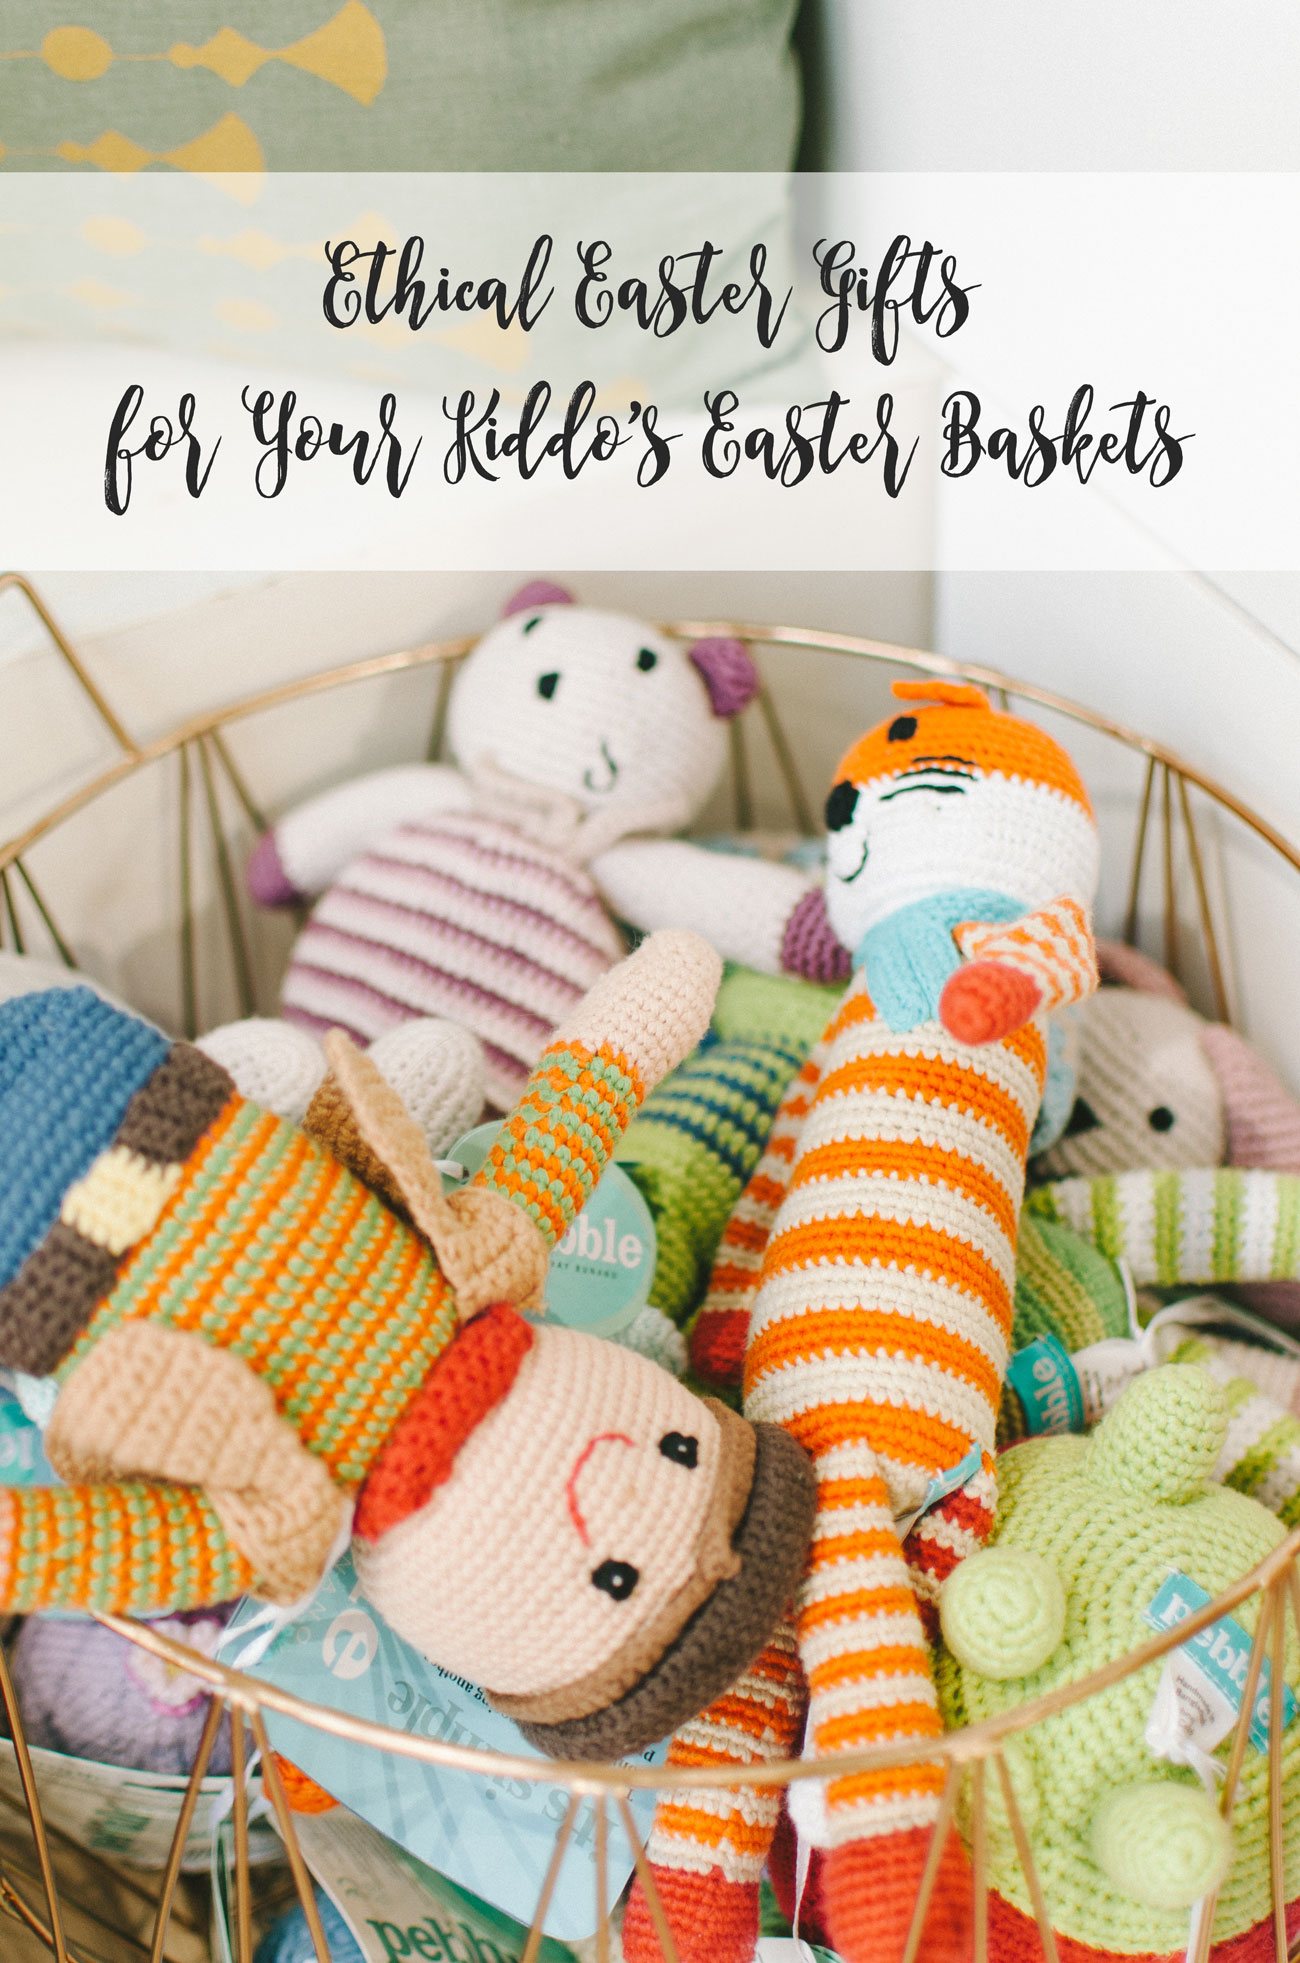 Easter Baskets Gift Ideas: Ethical Easter Gifts for Your Kiddos by lifestyle blogger Still Being Molly